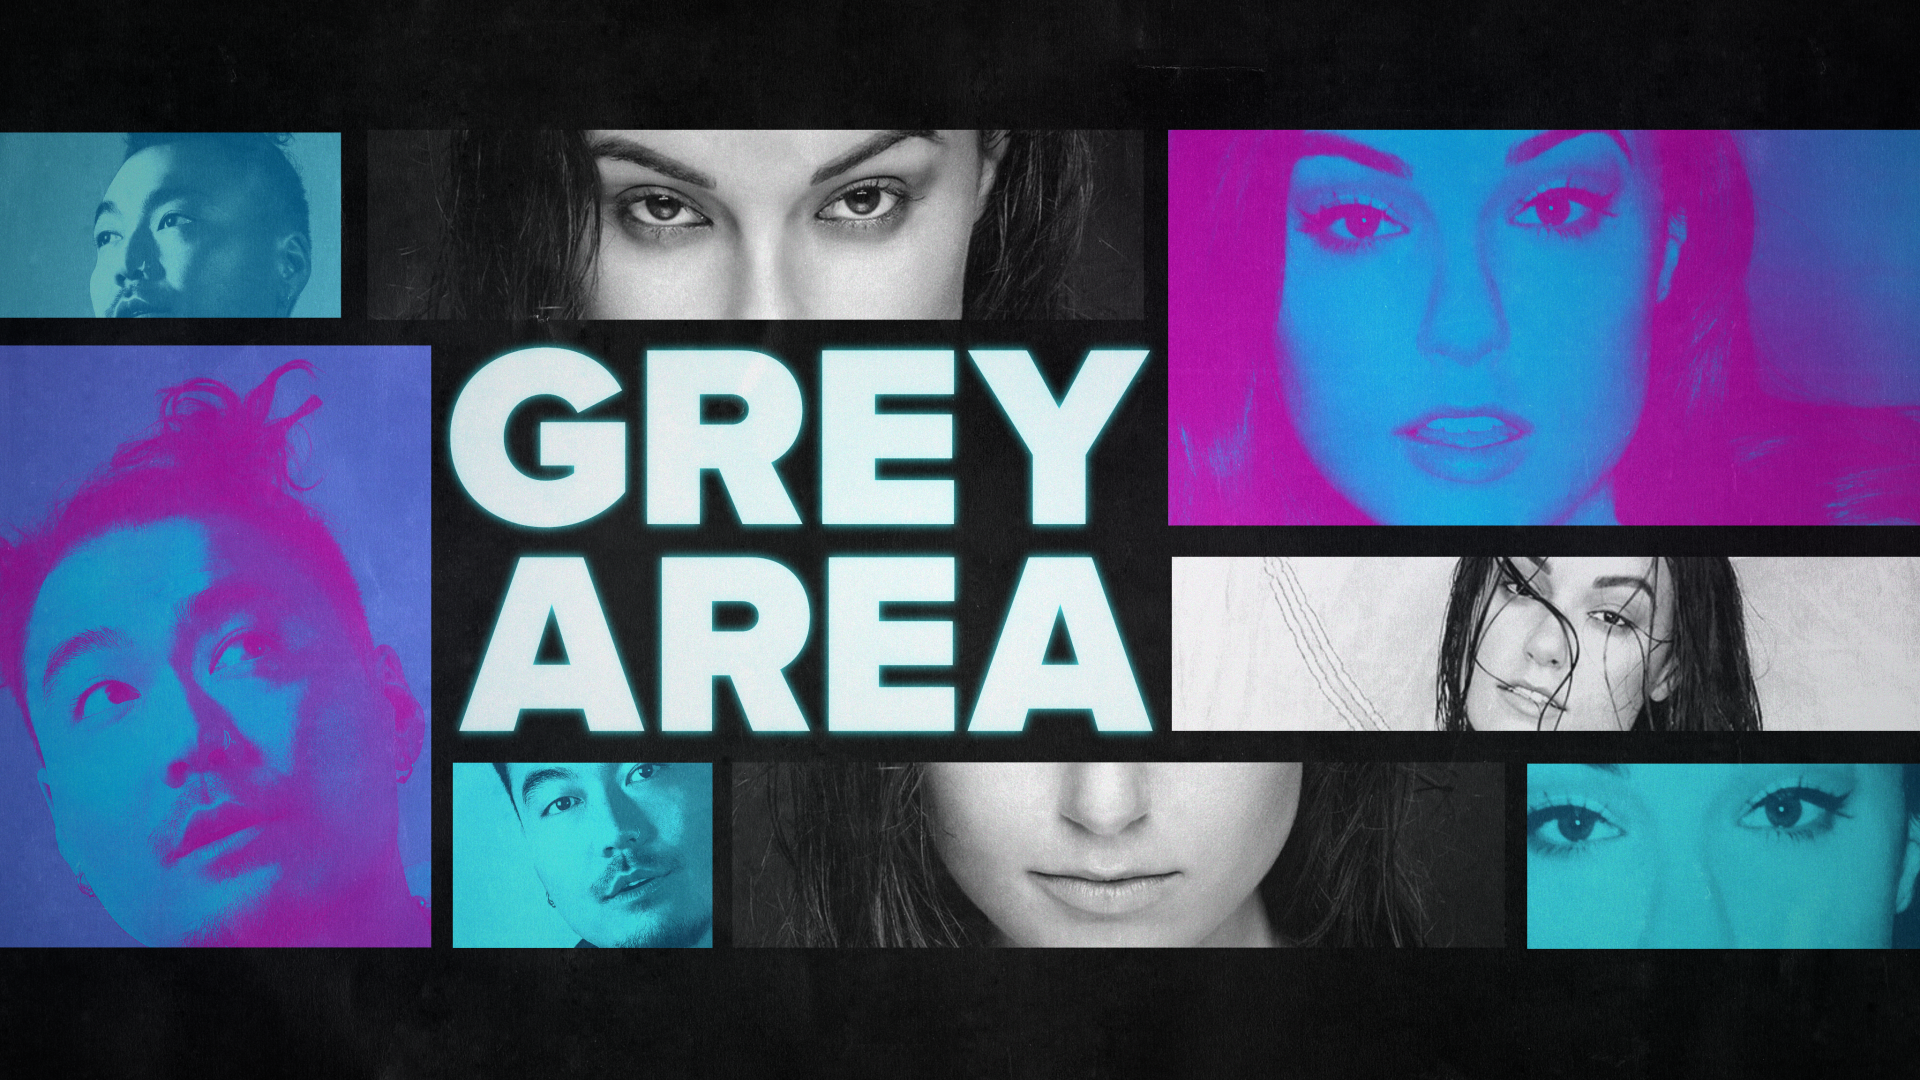 Grey-Area, Venn-Tv, Sasha-Grey-show, Sasha-Grey-Grey-Area, sashagrey, Sasha Grey, sasha grey 2020, sasha grey bio, sasha grey interview, sasha grey interview 2020, sasha grey photos, sasha grey pics, sasha grey pictures, Sashagrey.com, twitch.tv/sashagrey, Sasha-Grey-young,